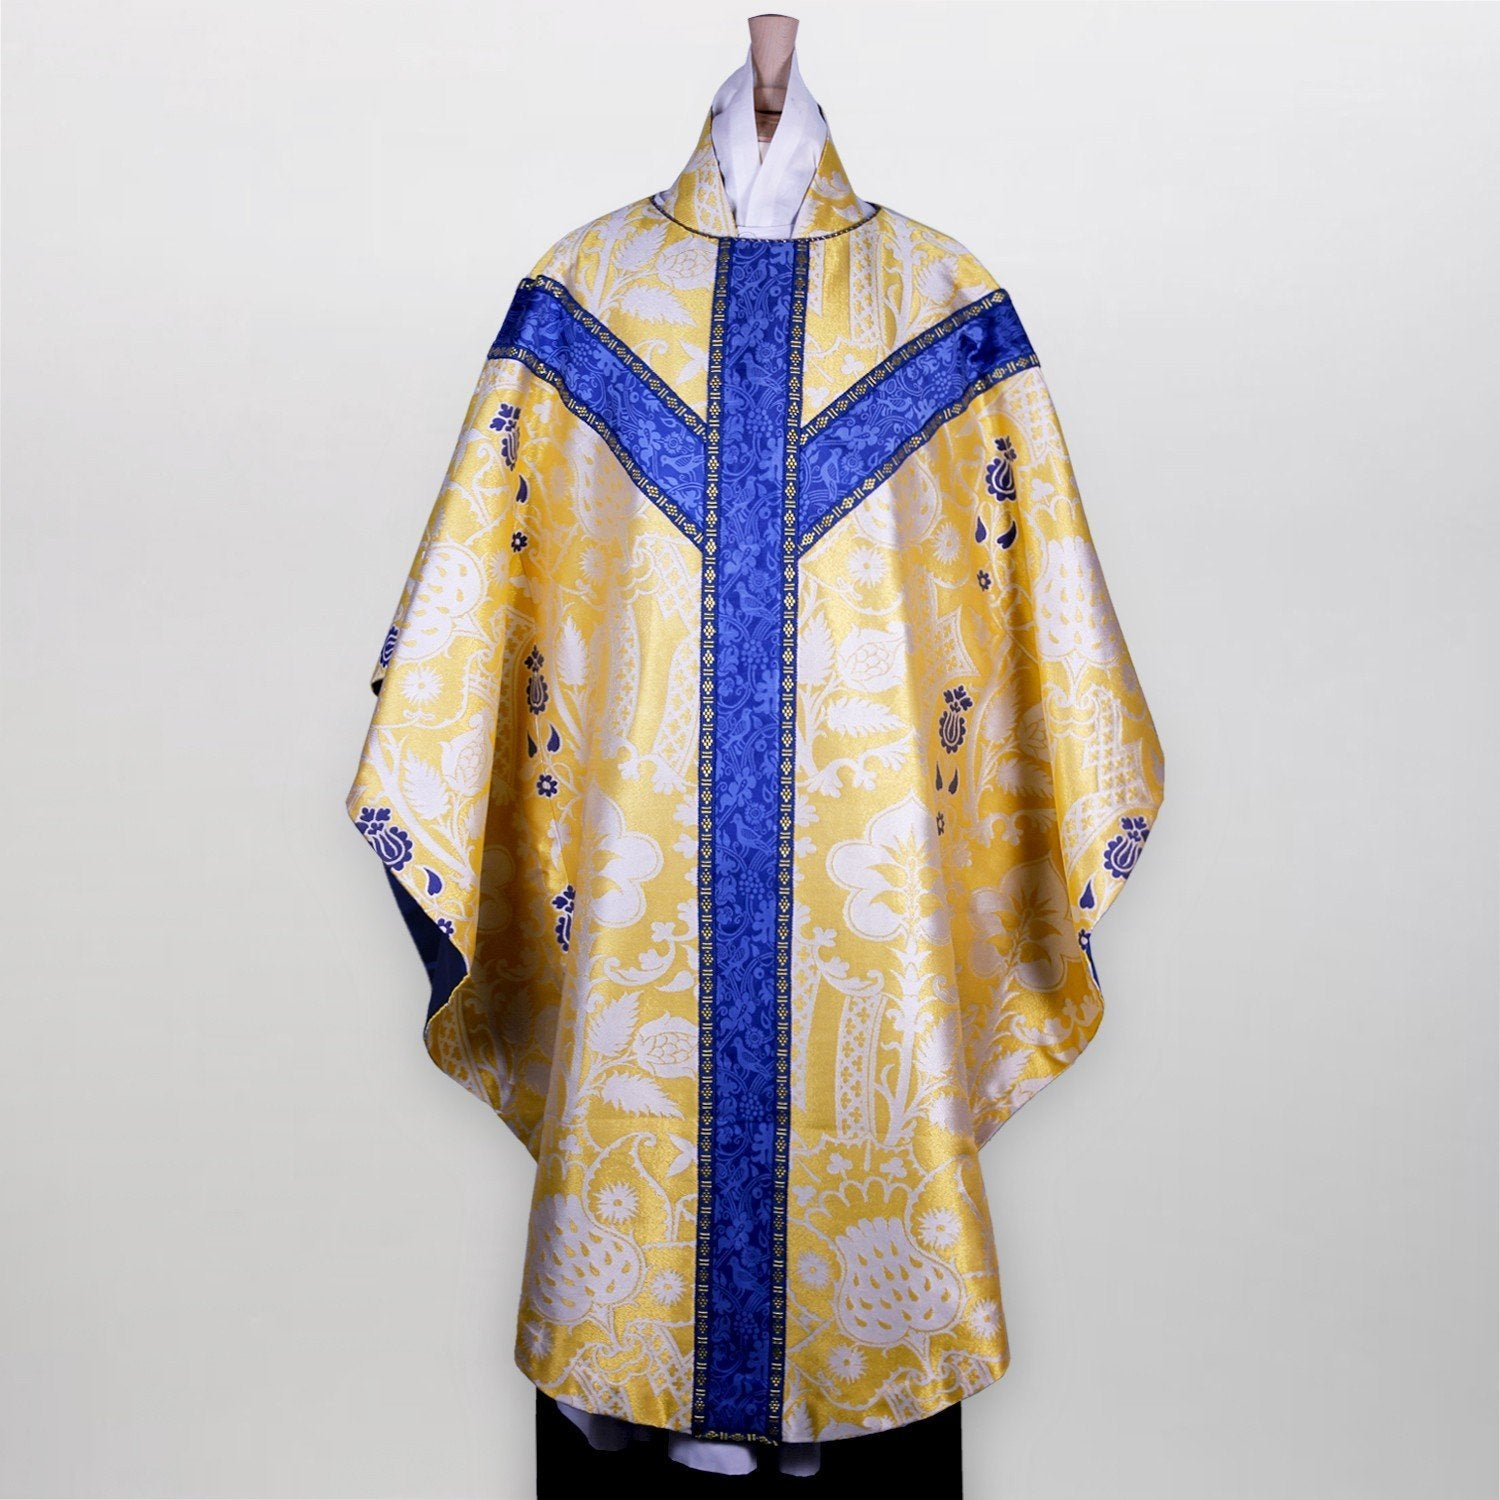 Embroidered Full Gothic Chasuble in Comper Strawberry - Watts & Co. (international)